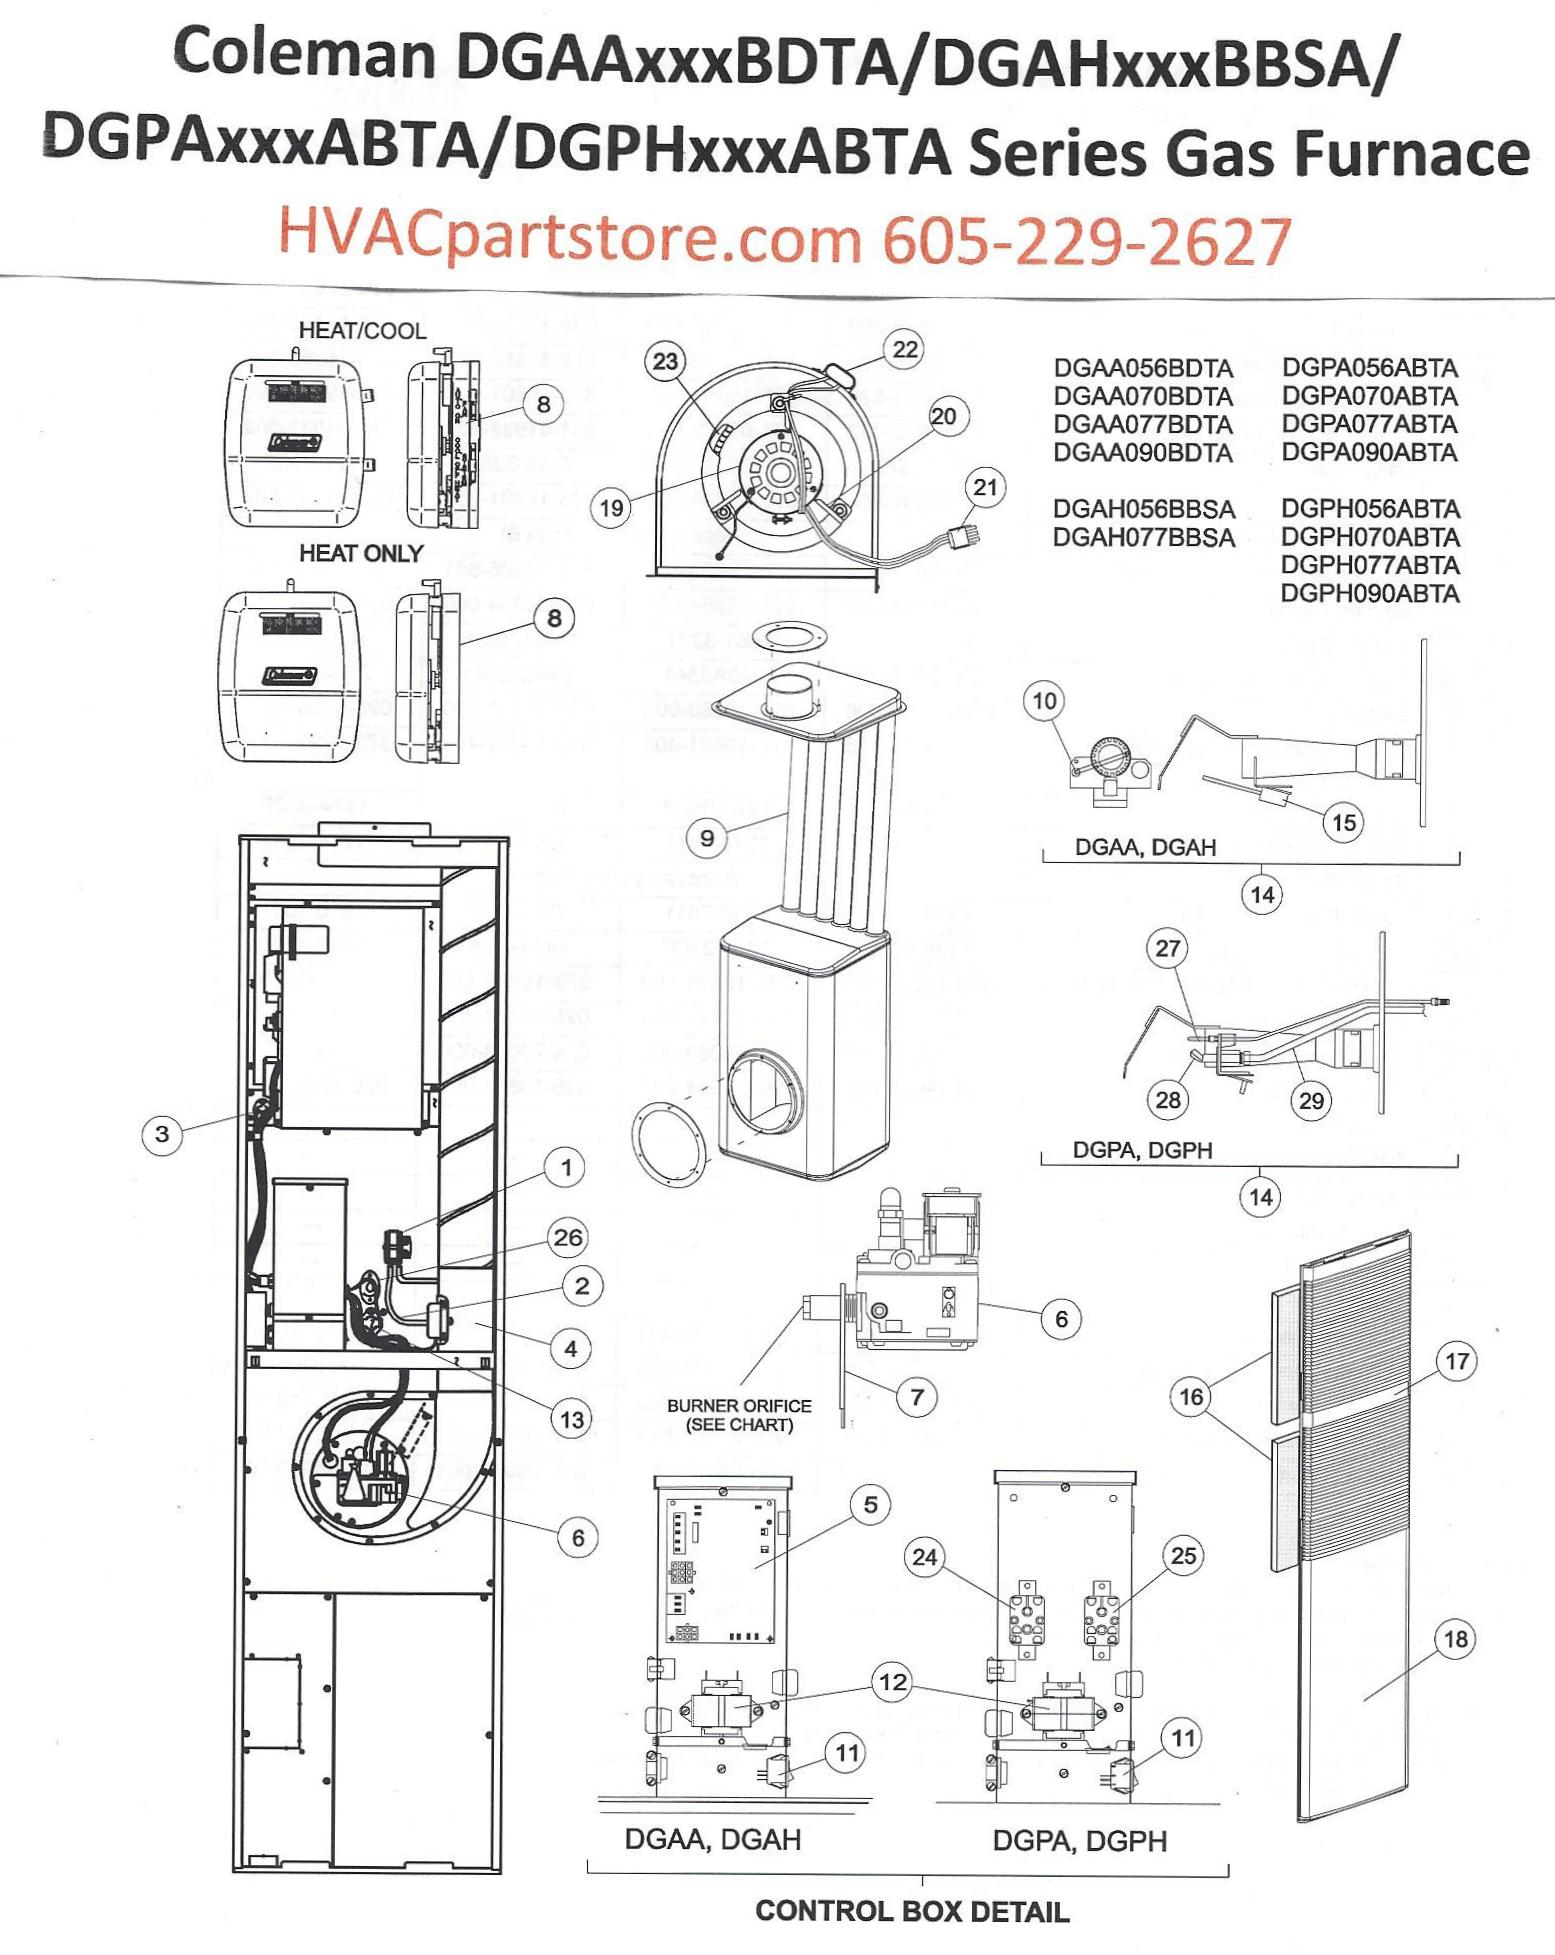 DGAAxxxBDTADiagram_8bafc3ea 82de 4e20 9605 e909ae02bd67?14560066853427379740 dgaa090bdta coleman gas furnace parts hvacpartstore DGAA090BDTA Parts at bayanpartner.co